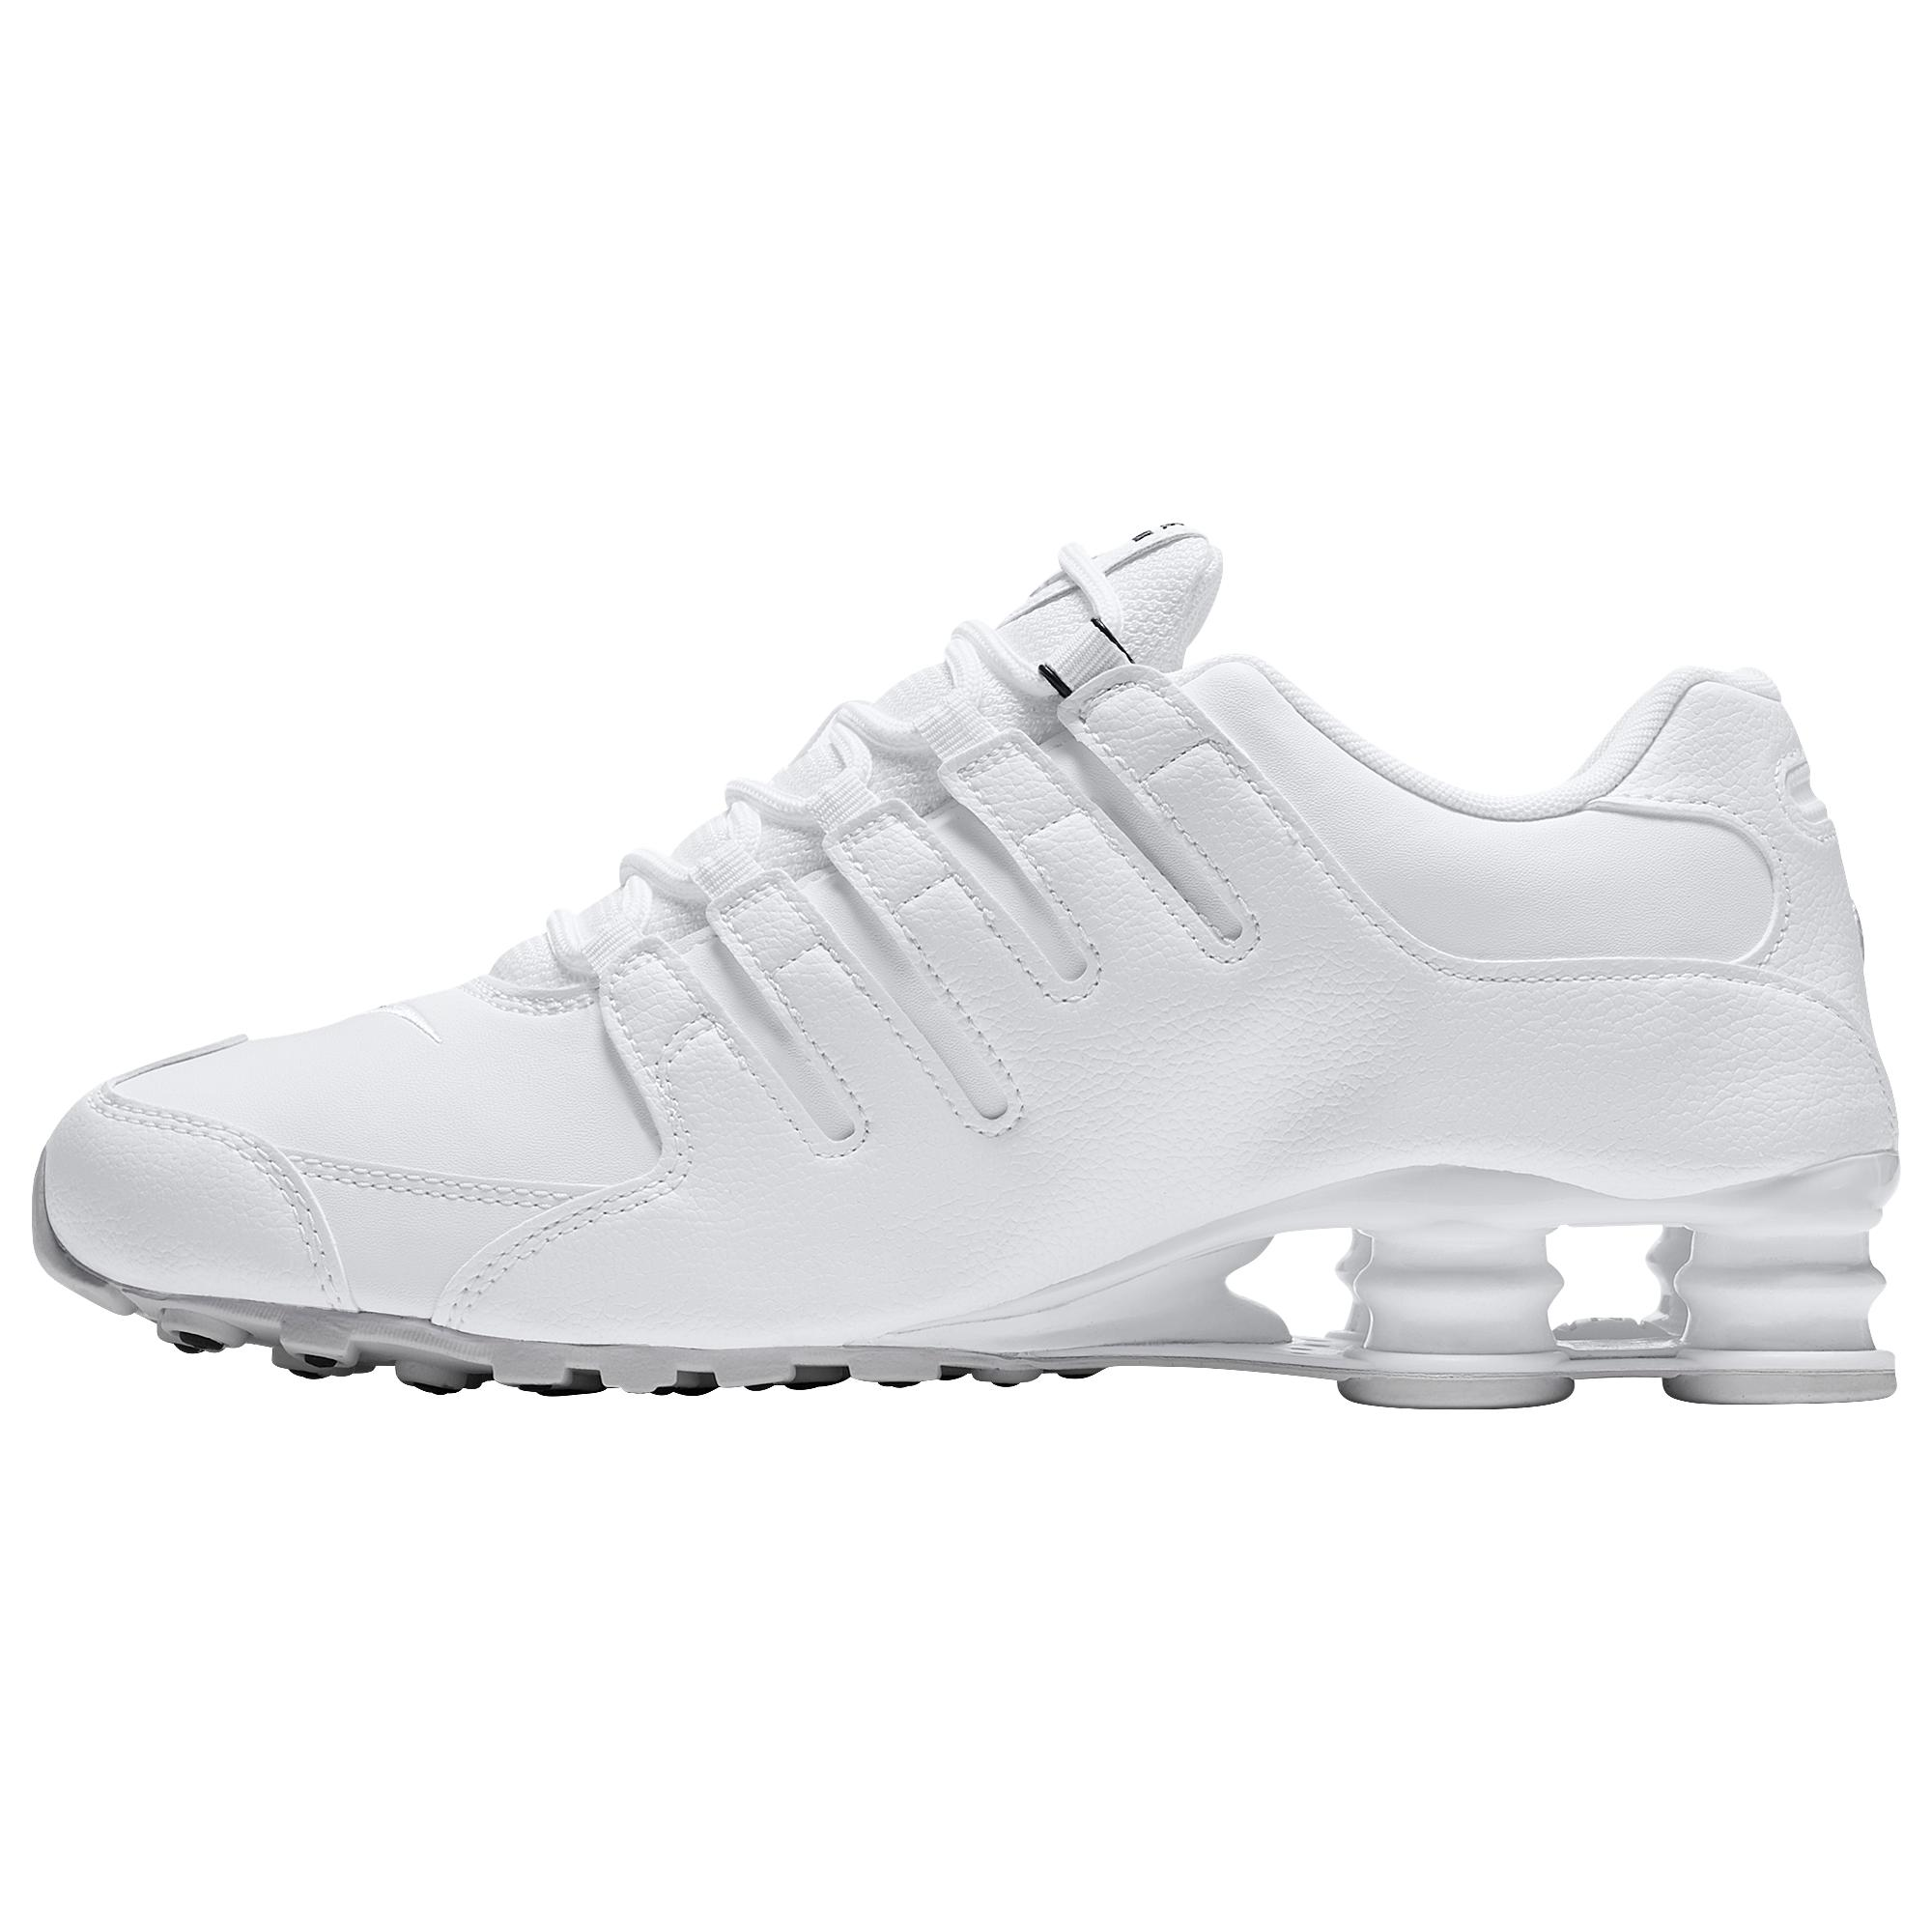 separation shoes b5750 a0aff Men's White Shox Nz Running Shoes